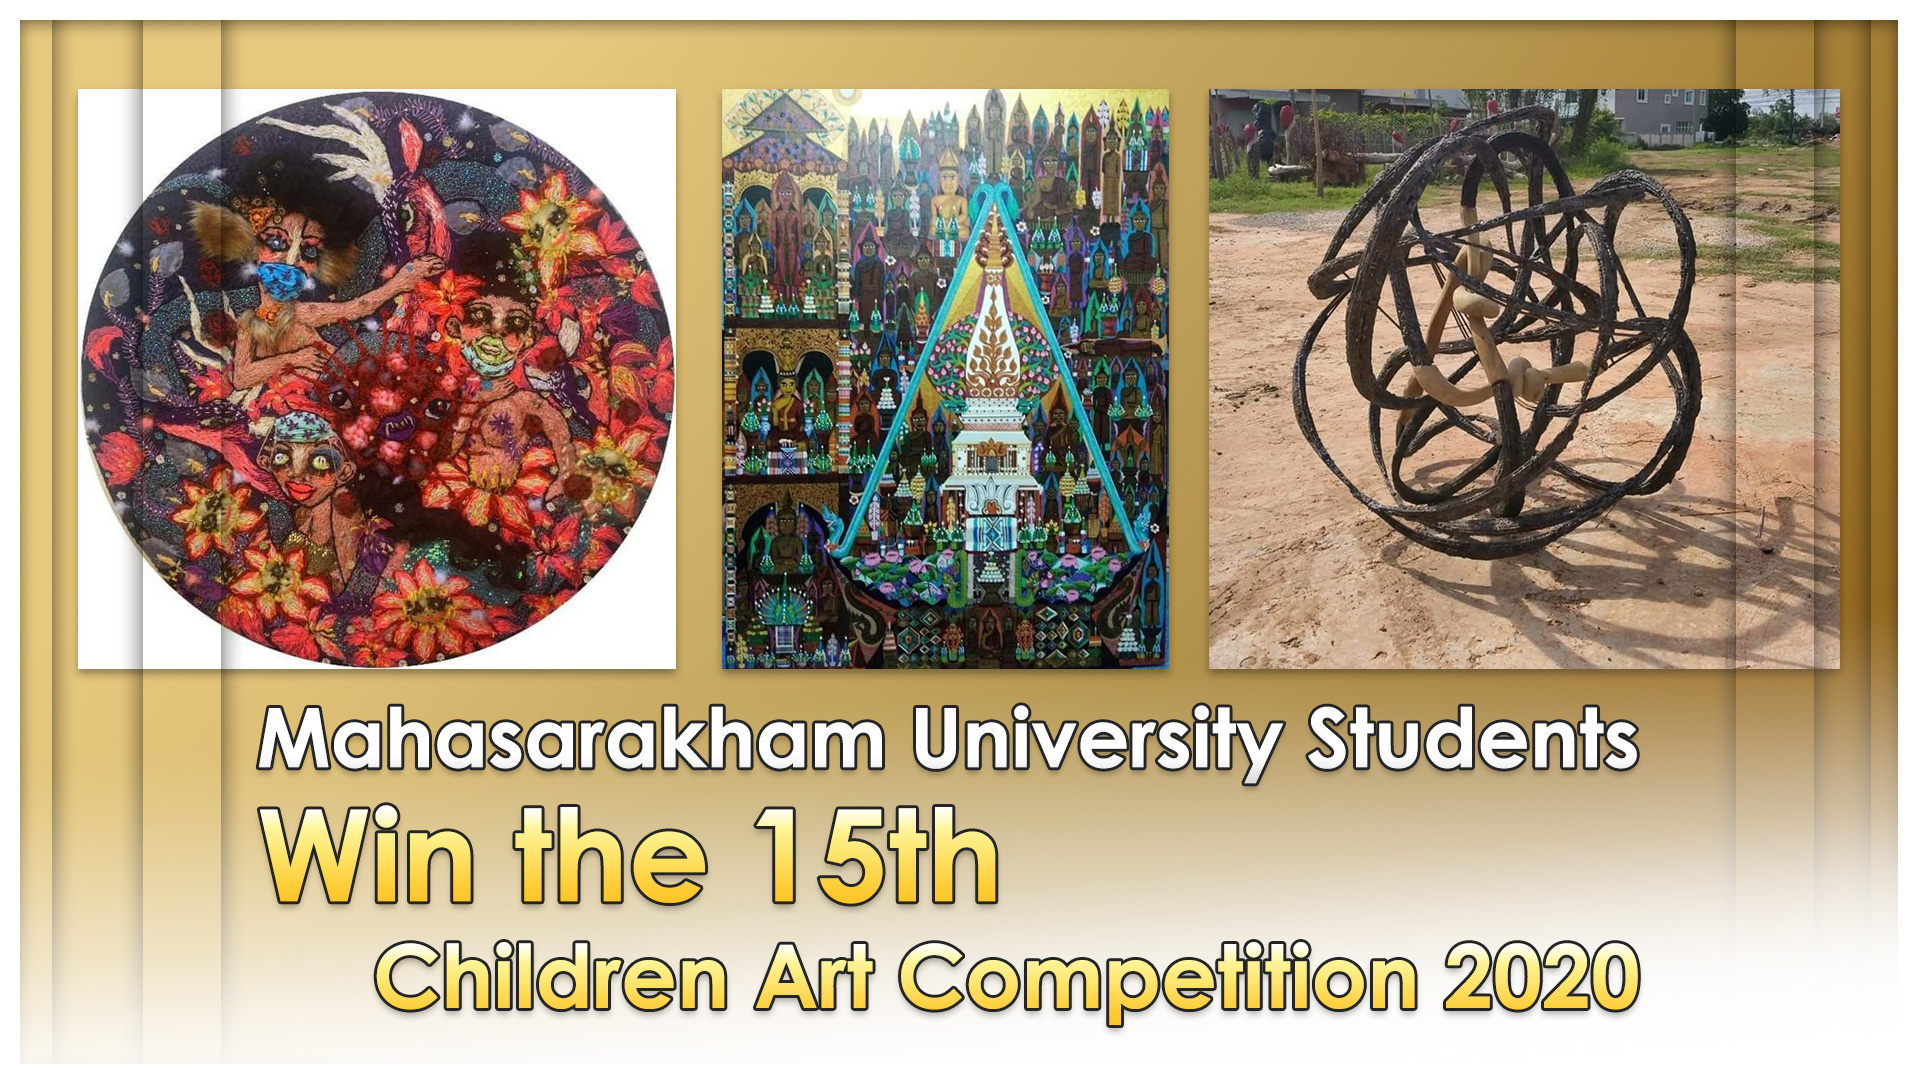 Mahasarakham University Students Win the 15th Children Art Competition 2020.